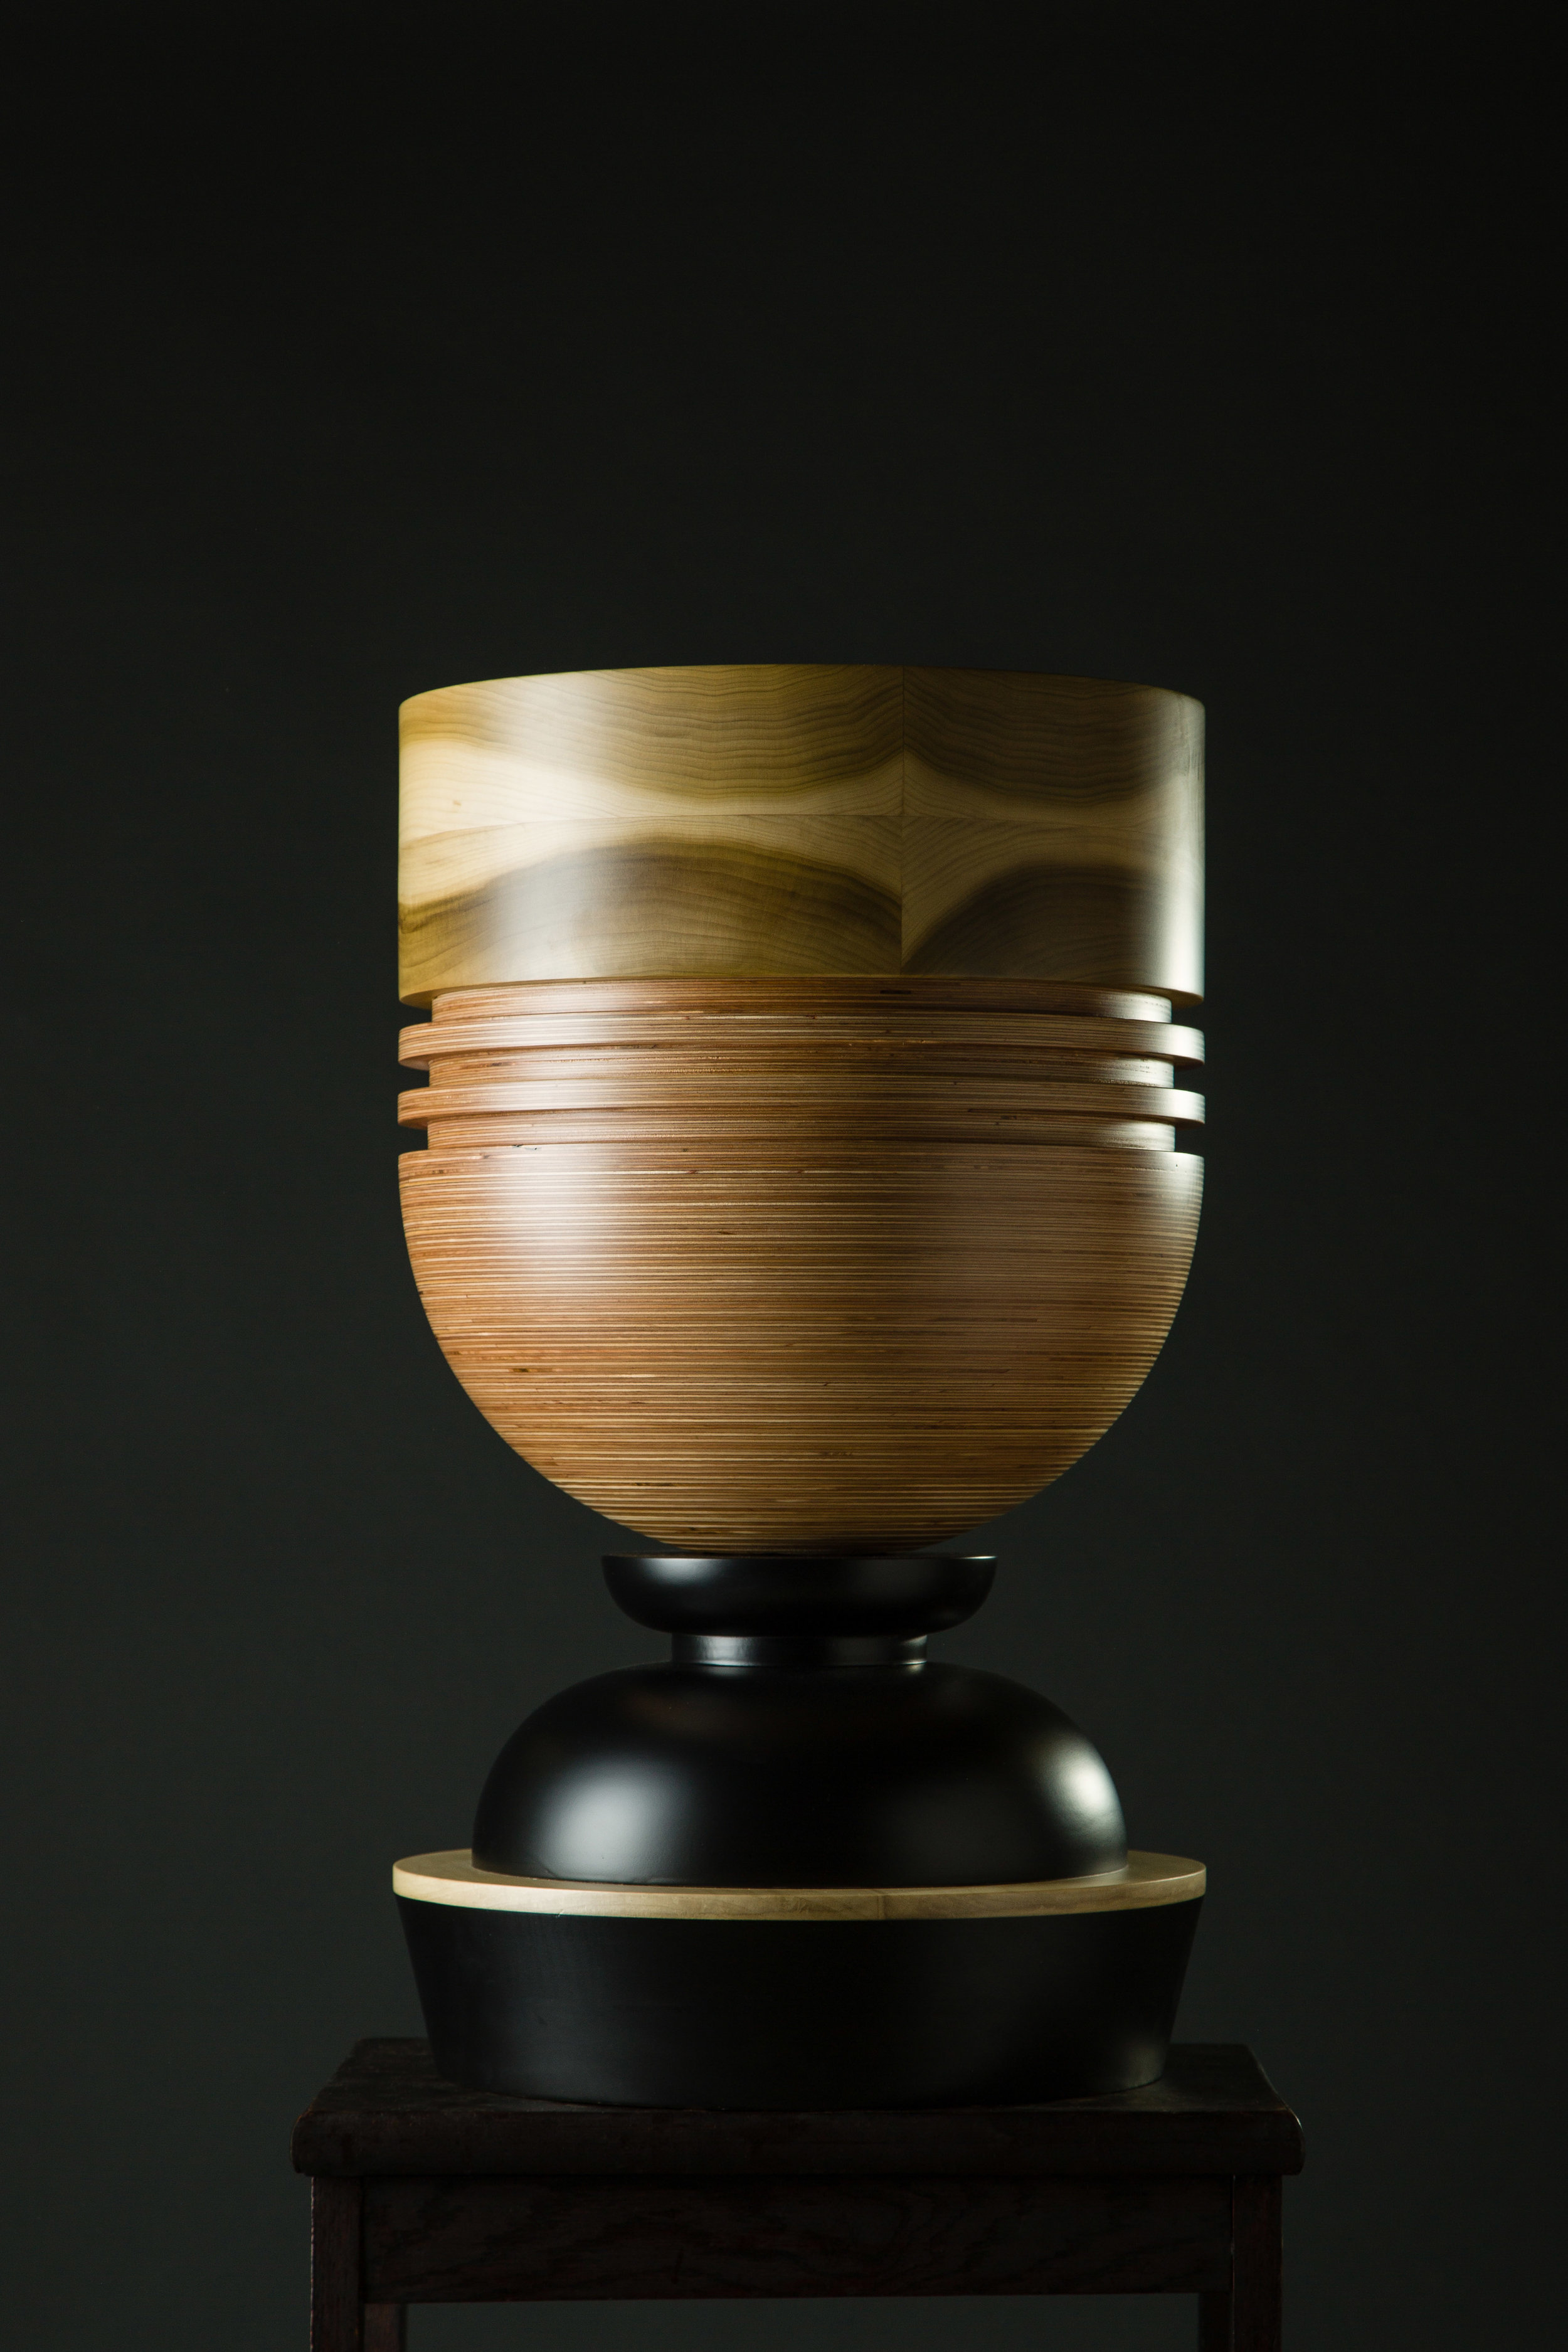 Contemporary wood sculpture vessel by Simone Brewster Tropical Noire